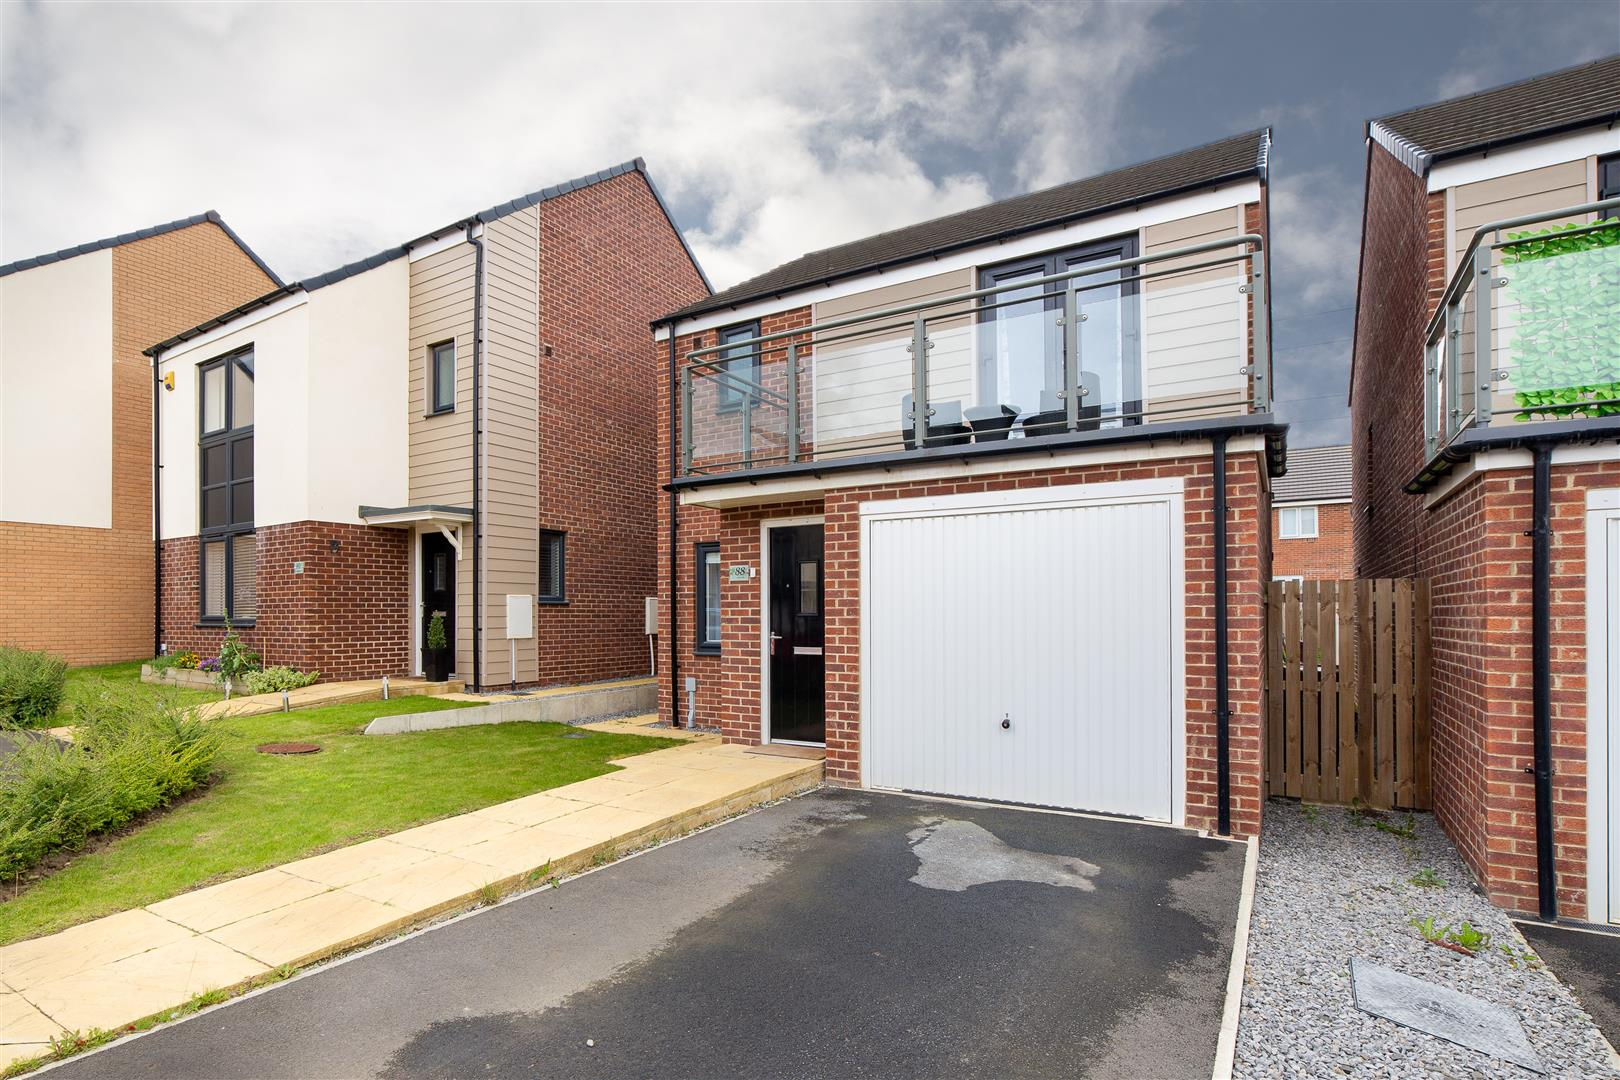 3 bed detached house for sale in Newcastle Upon Tyne, NE13 9DW  - Property Image 1